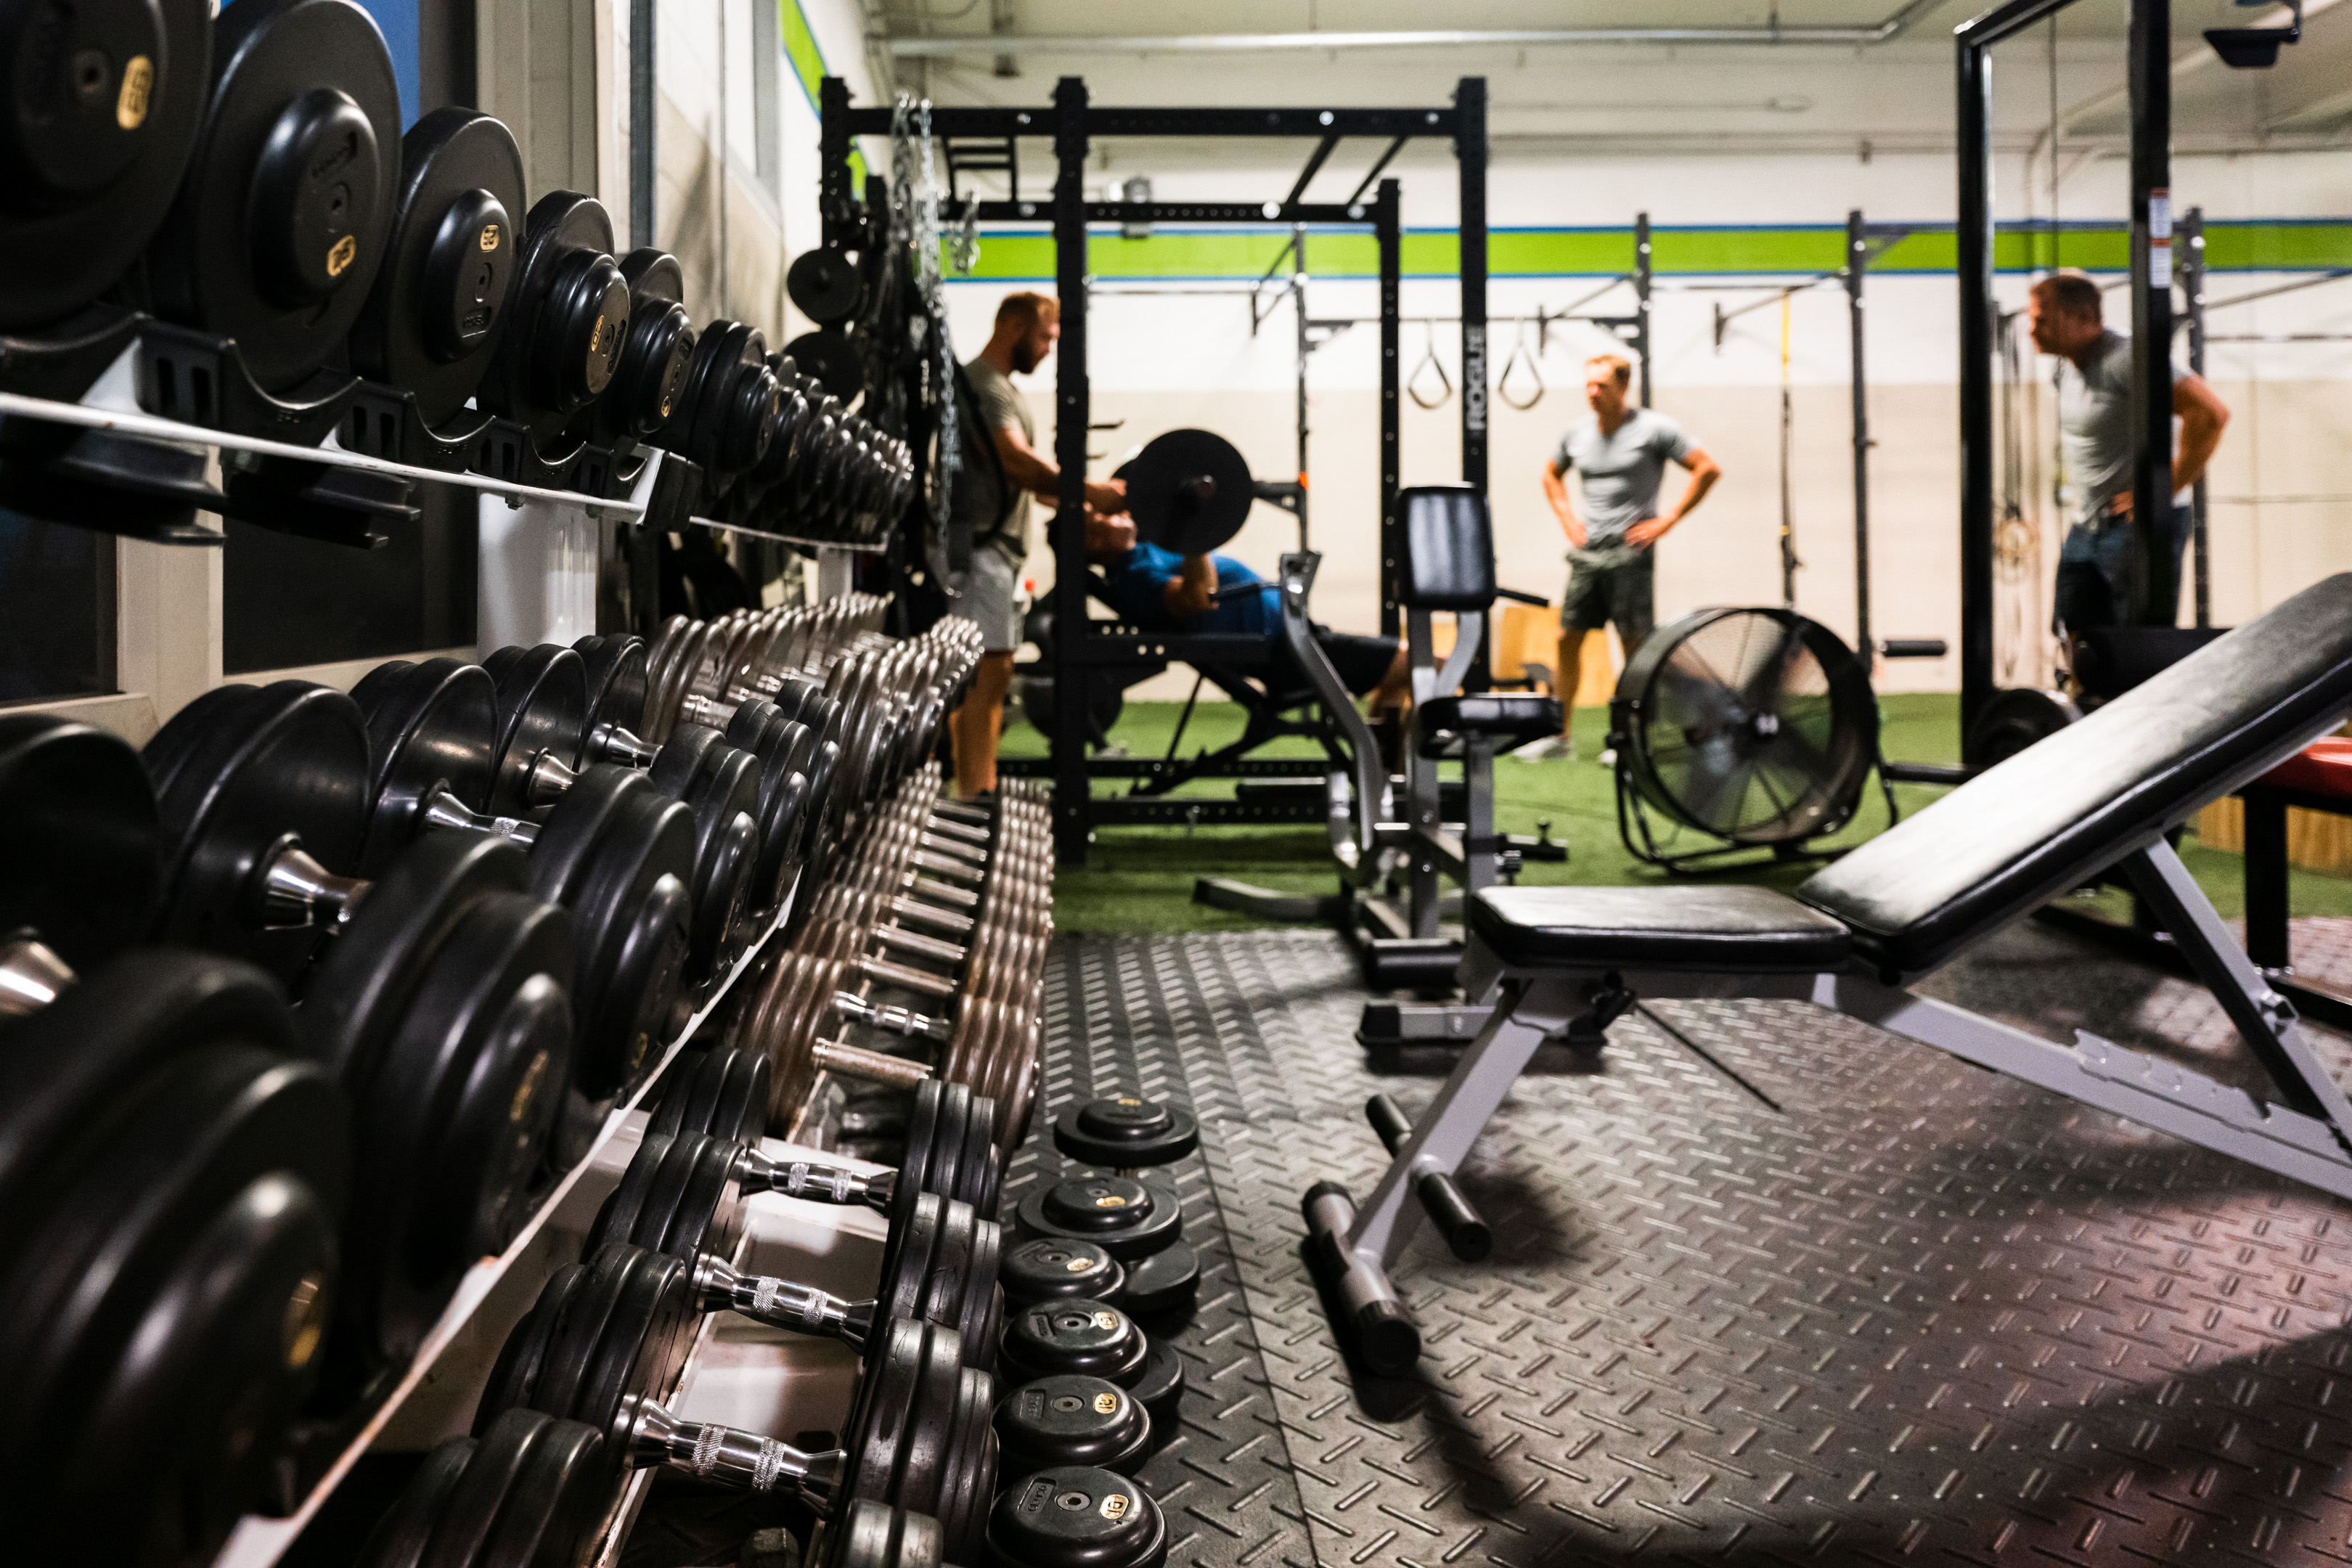 Free weights at Prevail Grand Rapids personal training and gym located in Ada, Michigan.